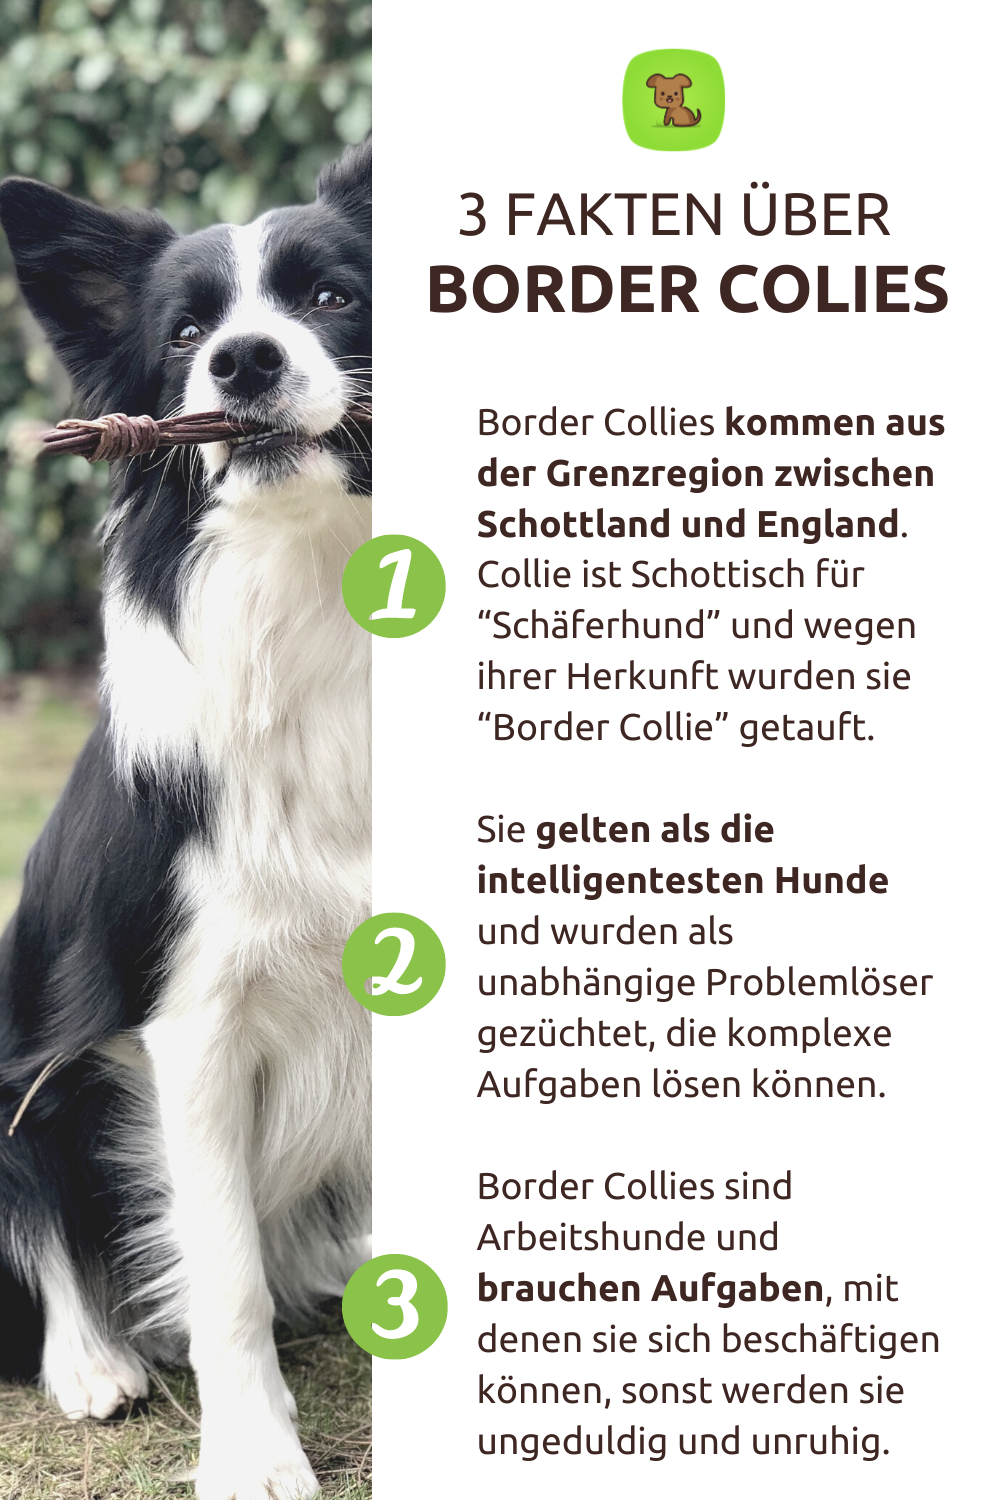 3 Fakten Uber Border Collies In 2020 Hunde Arbeitshunde Border Collie